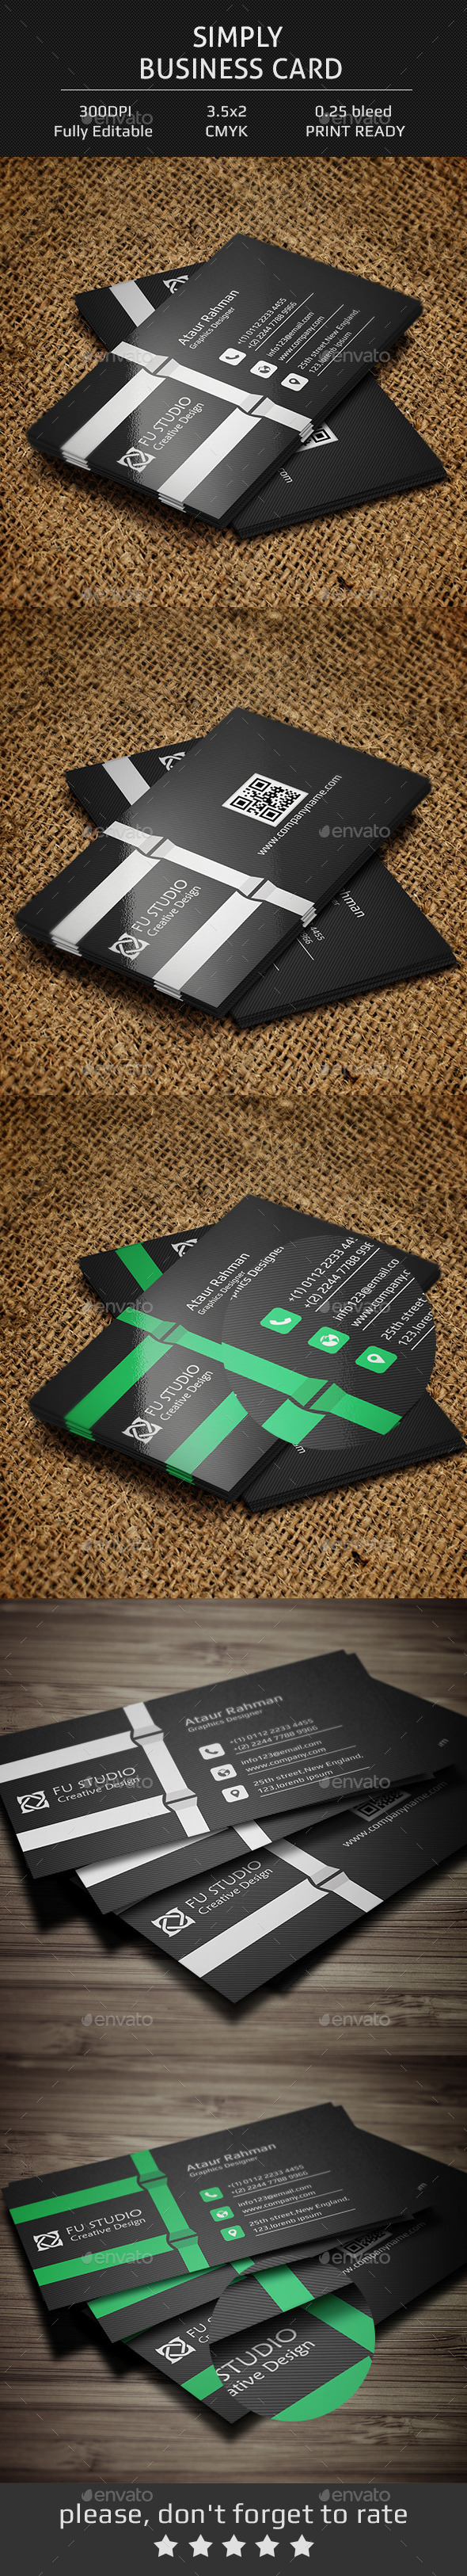 GraphicRiver Simply Business Card V4 11902143